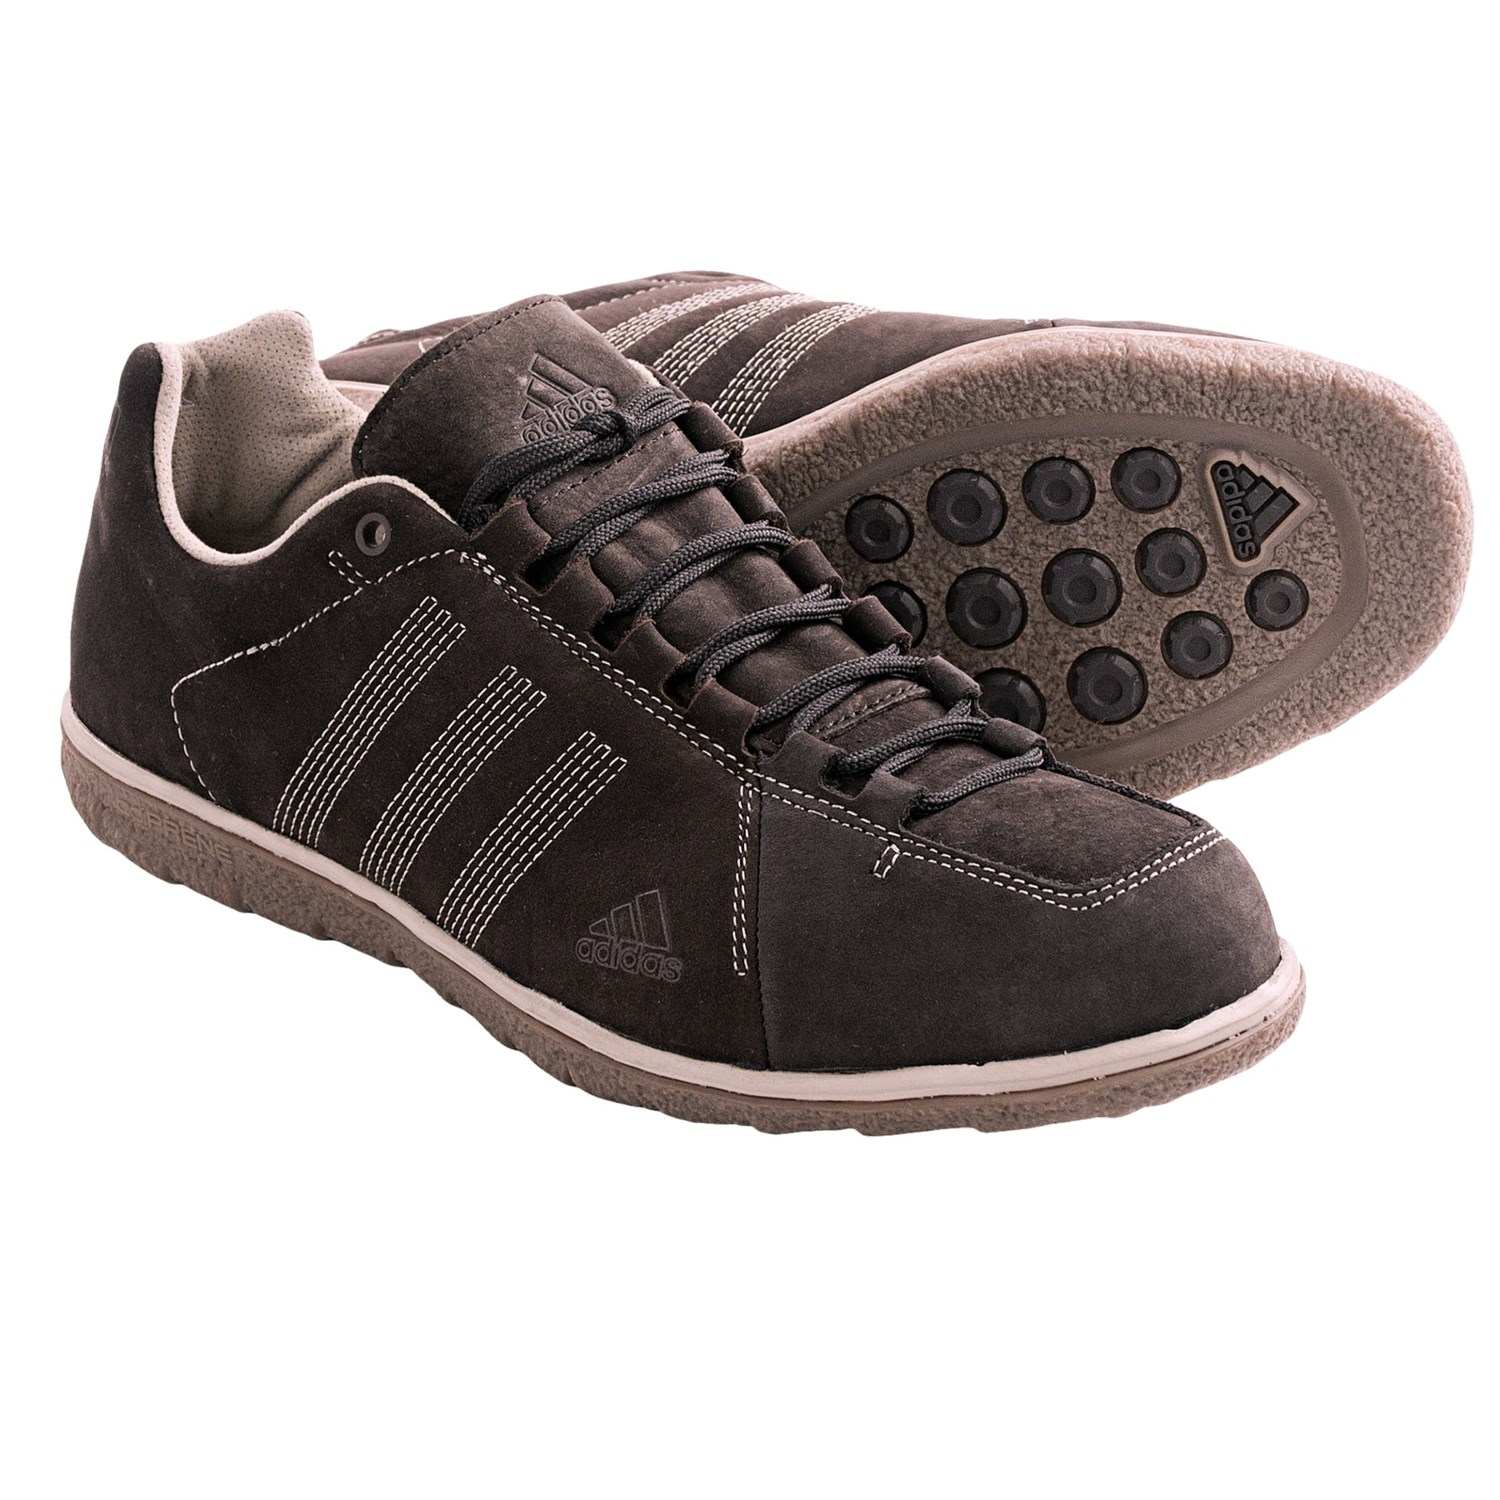 Mens Casual Mid Top Shoes Images Men To